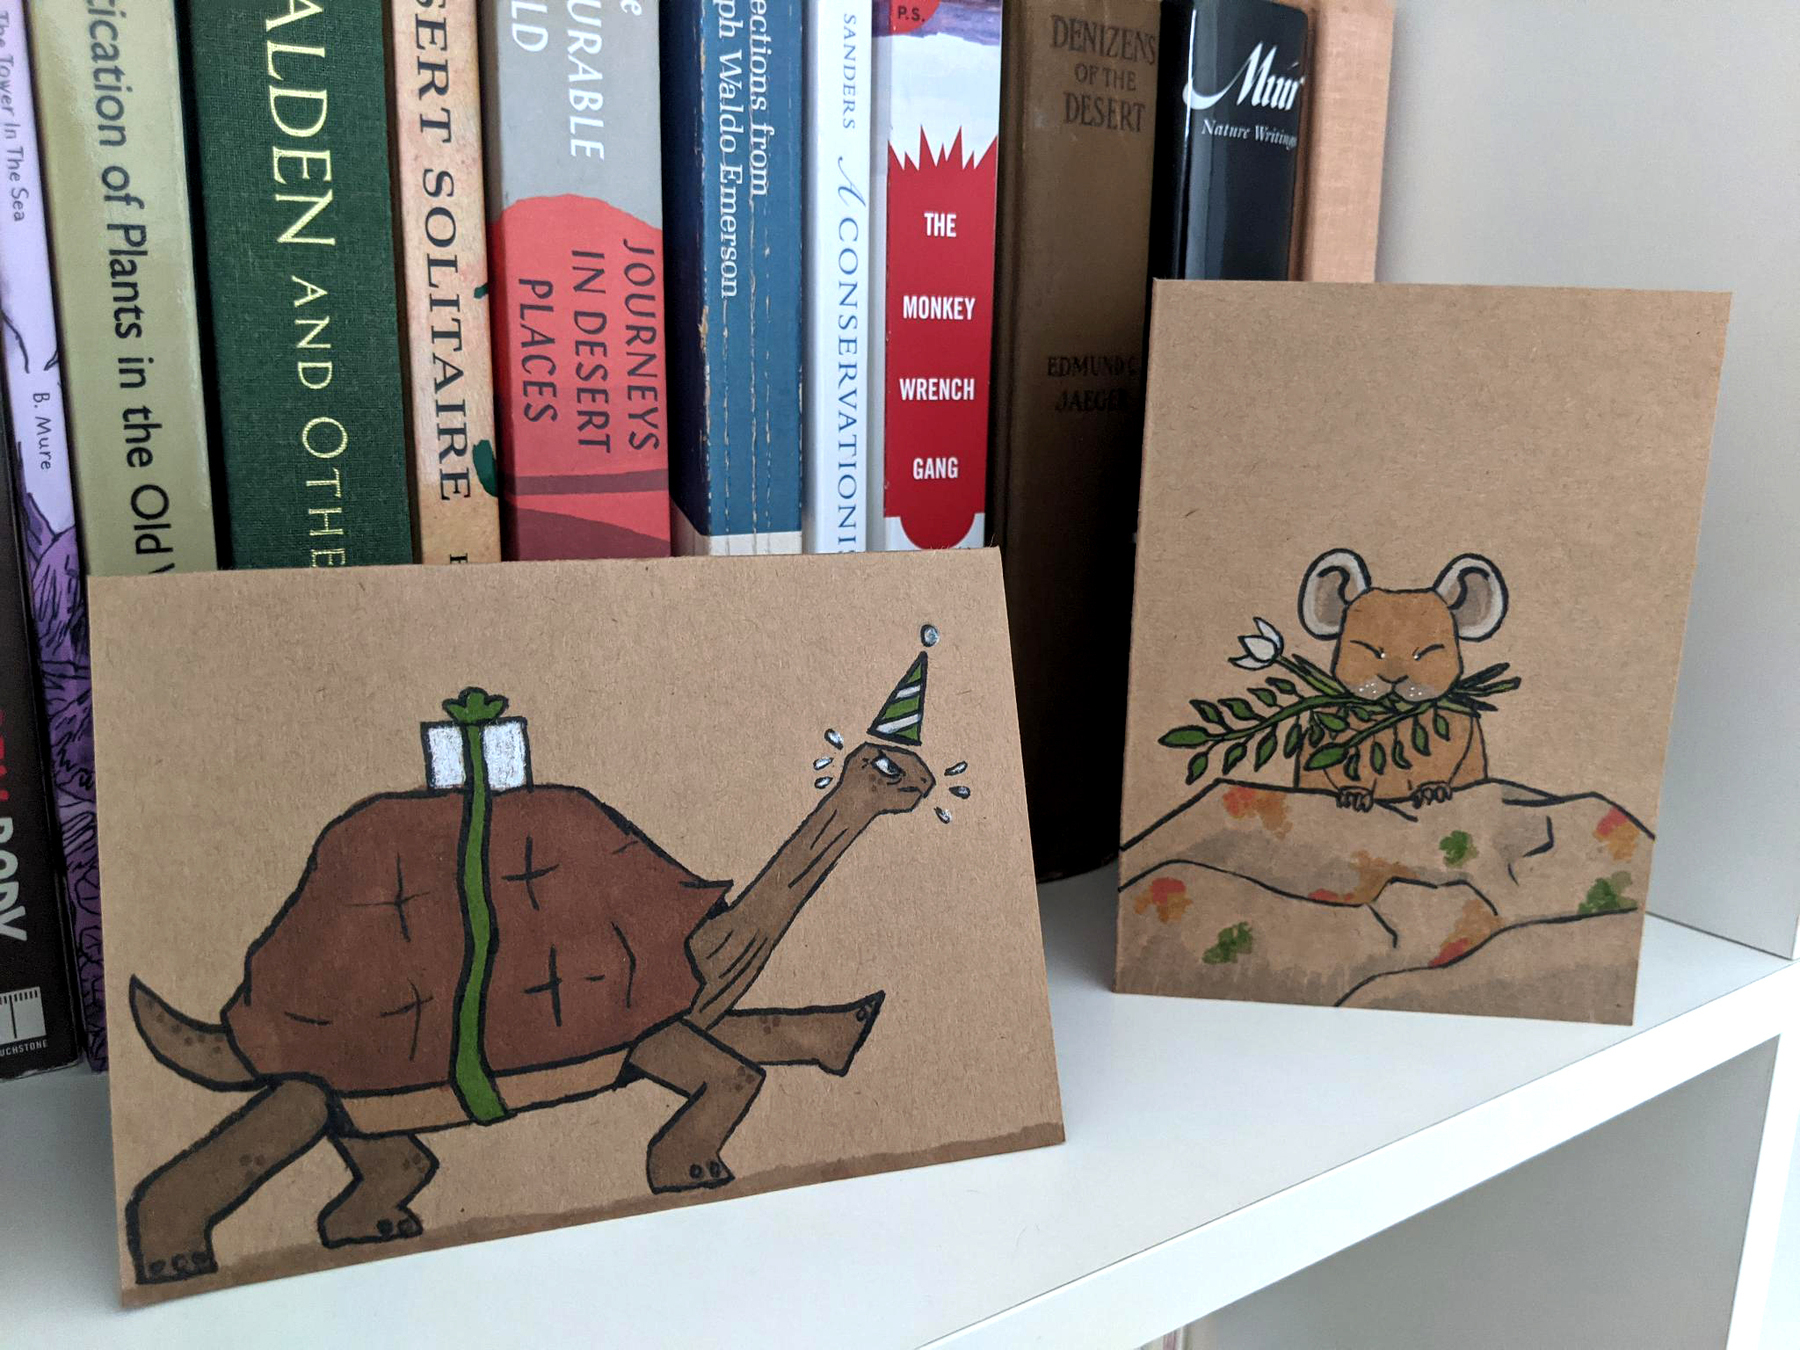 Two hand drawn cards sitting on a bookshelf. Both cards are made of brown craft paper and colored using markers. One has a tortoise rushing to deliver a package and the other has a pika sitting on a big rock with a bunch of flowers and grass in its mouth.